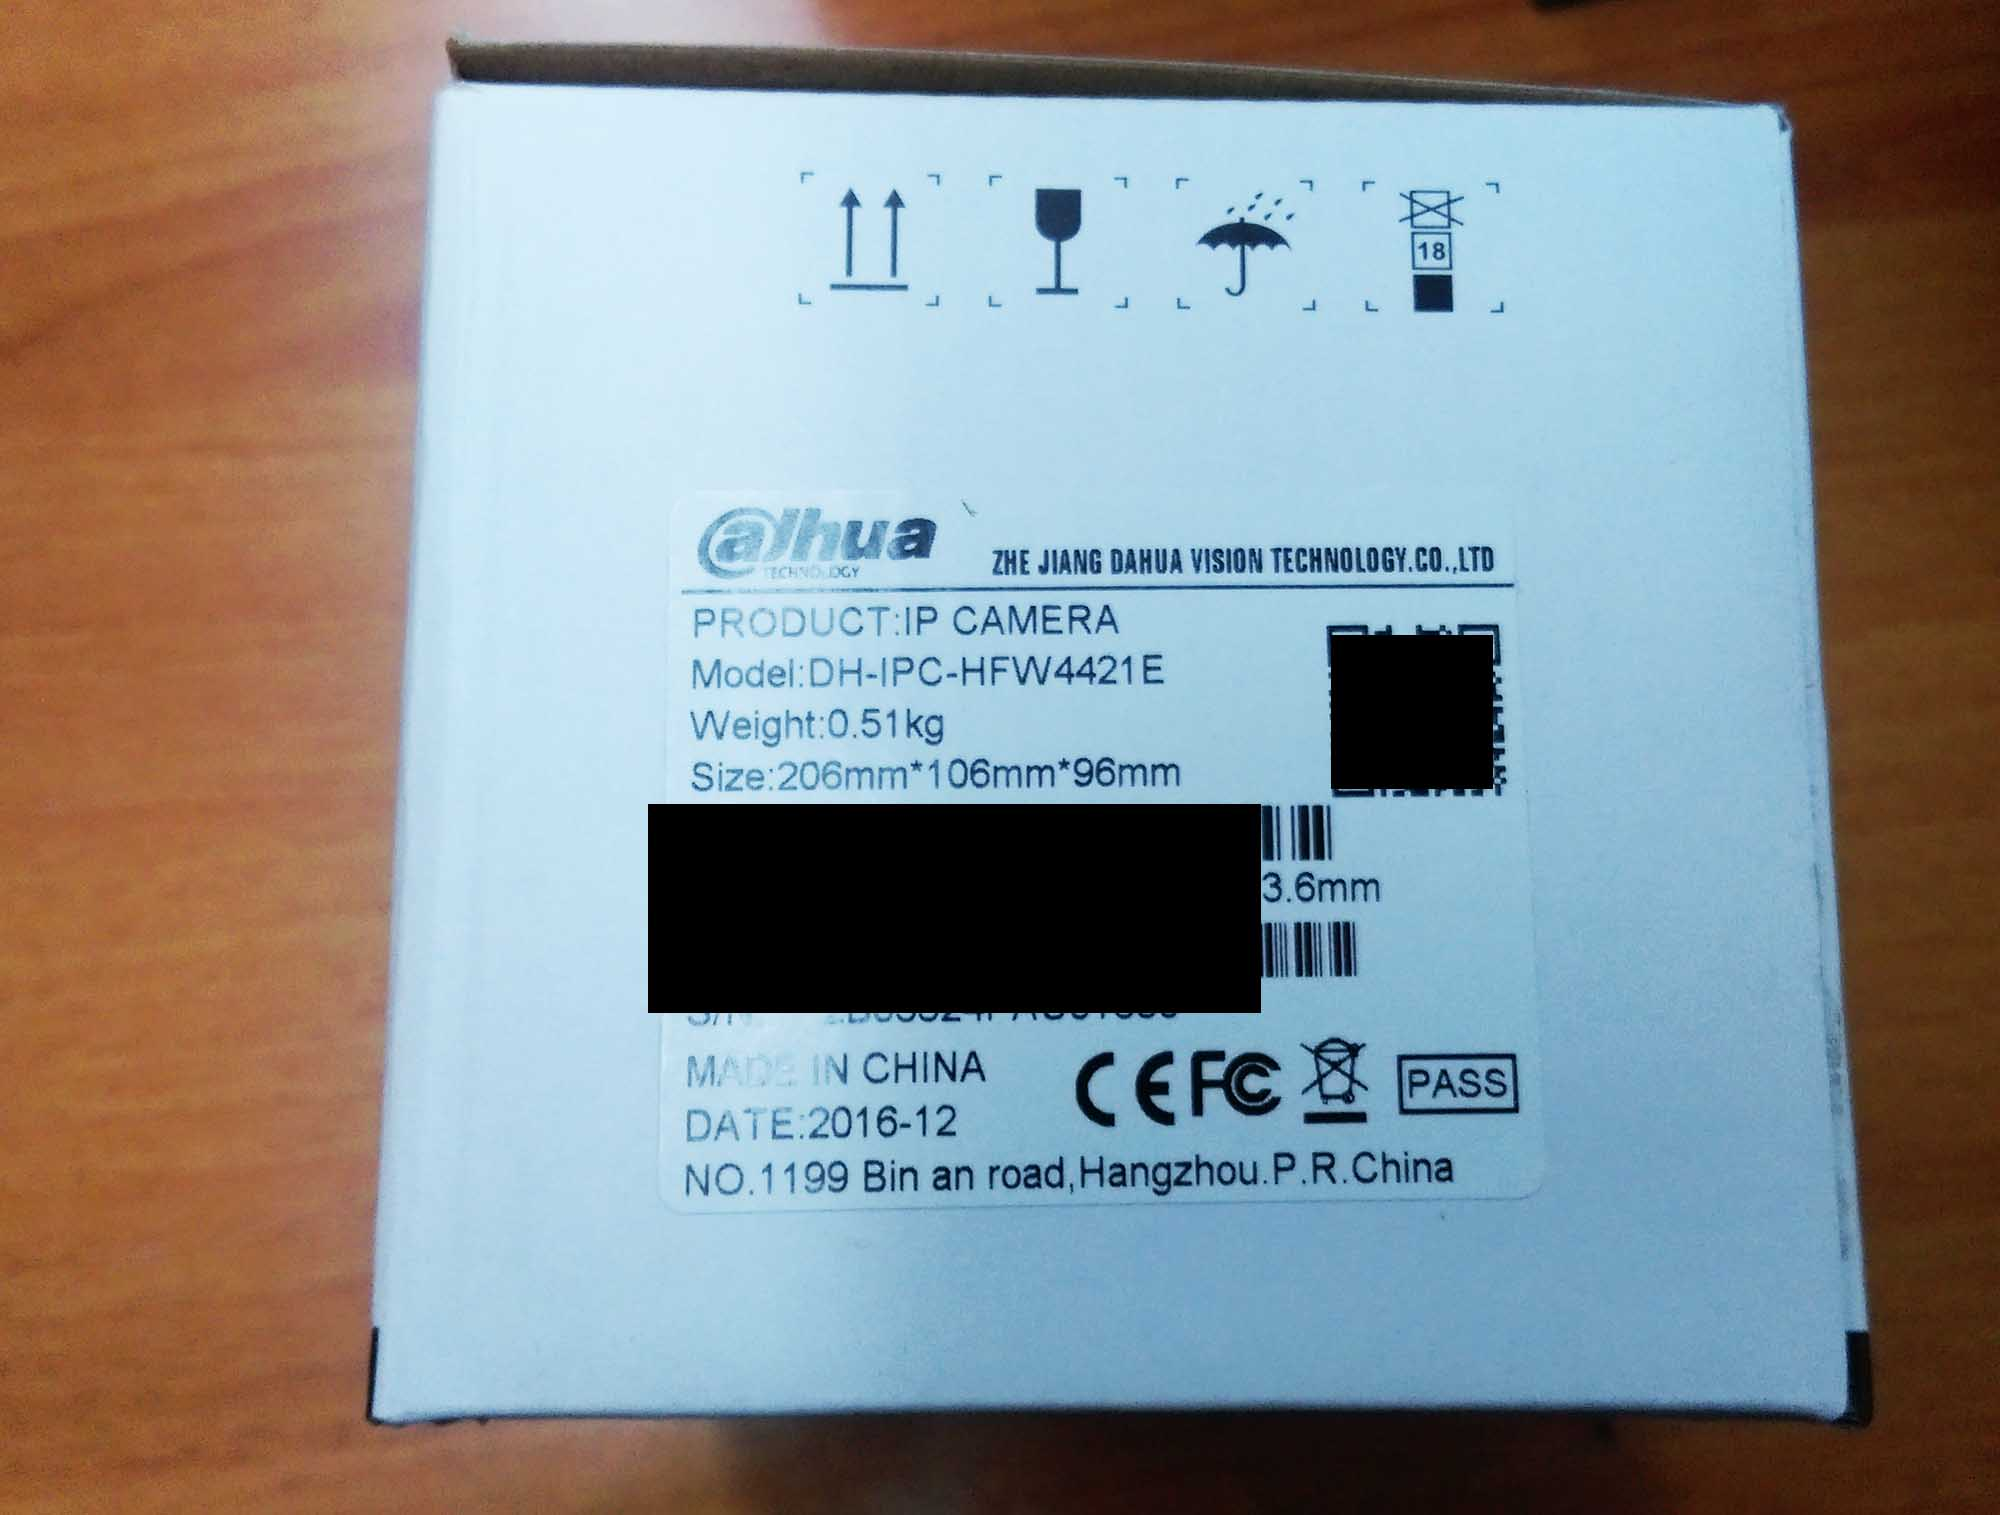 The label on the box. DH means the camera has Dahua logo inscriptio.